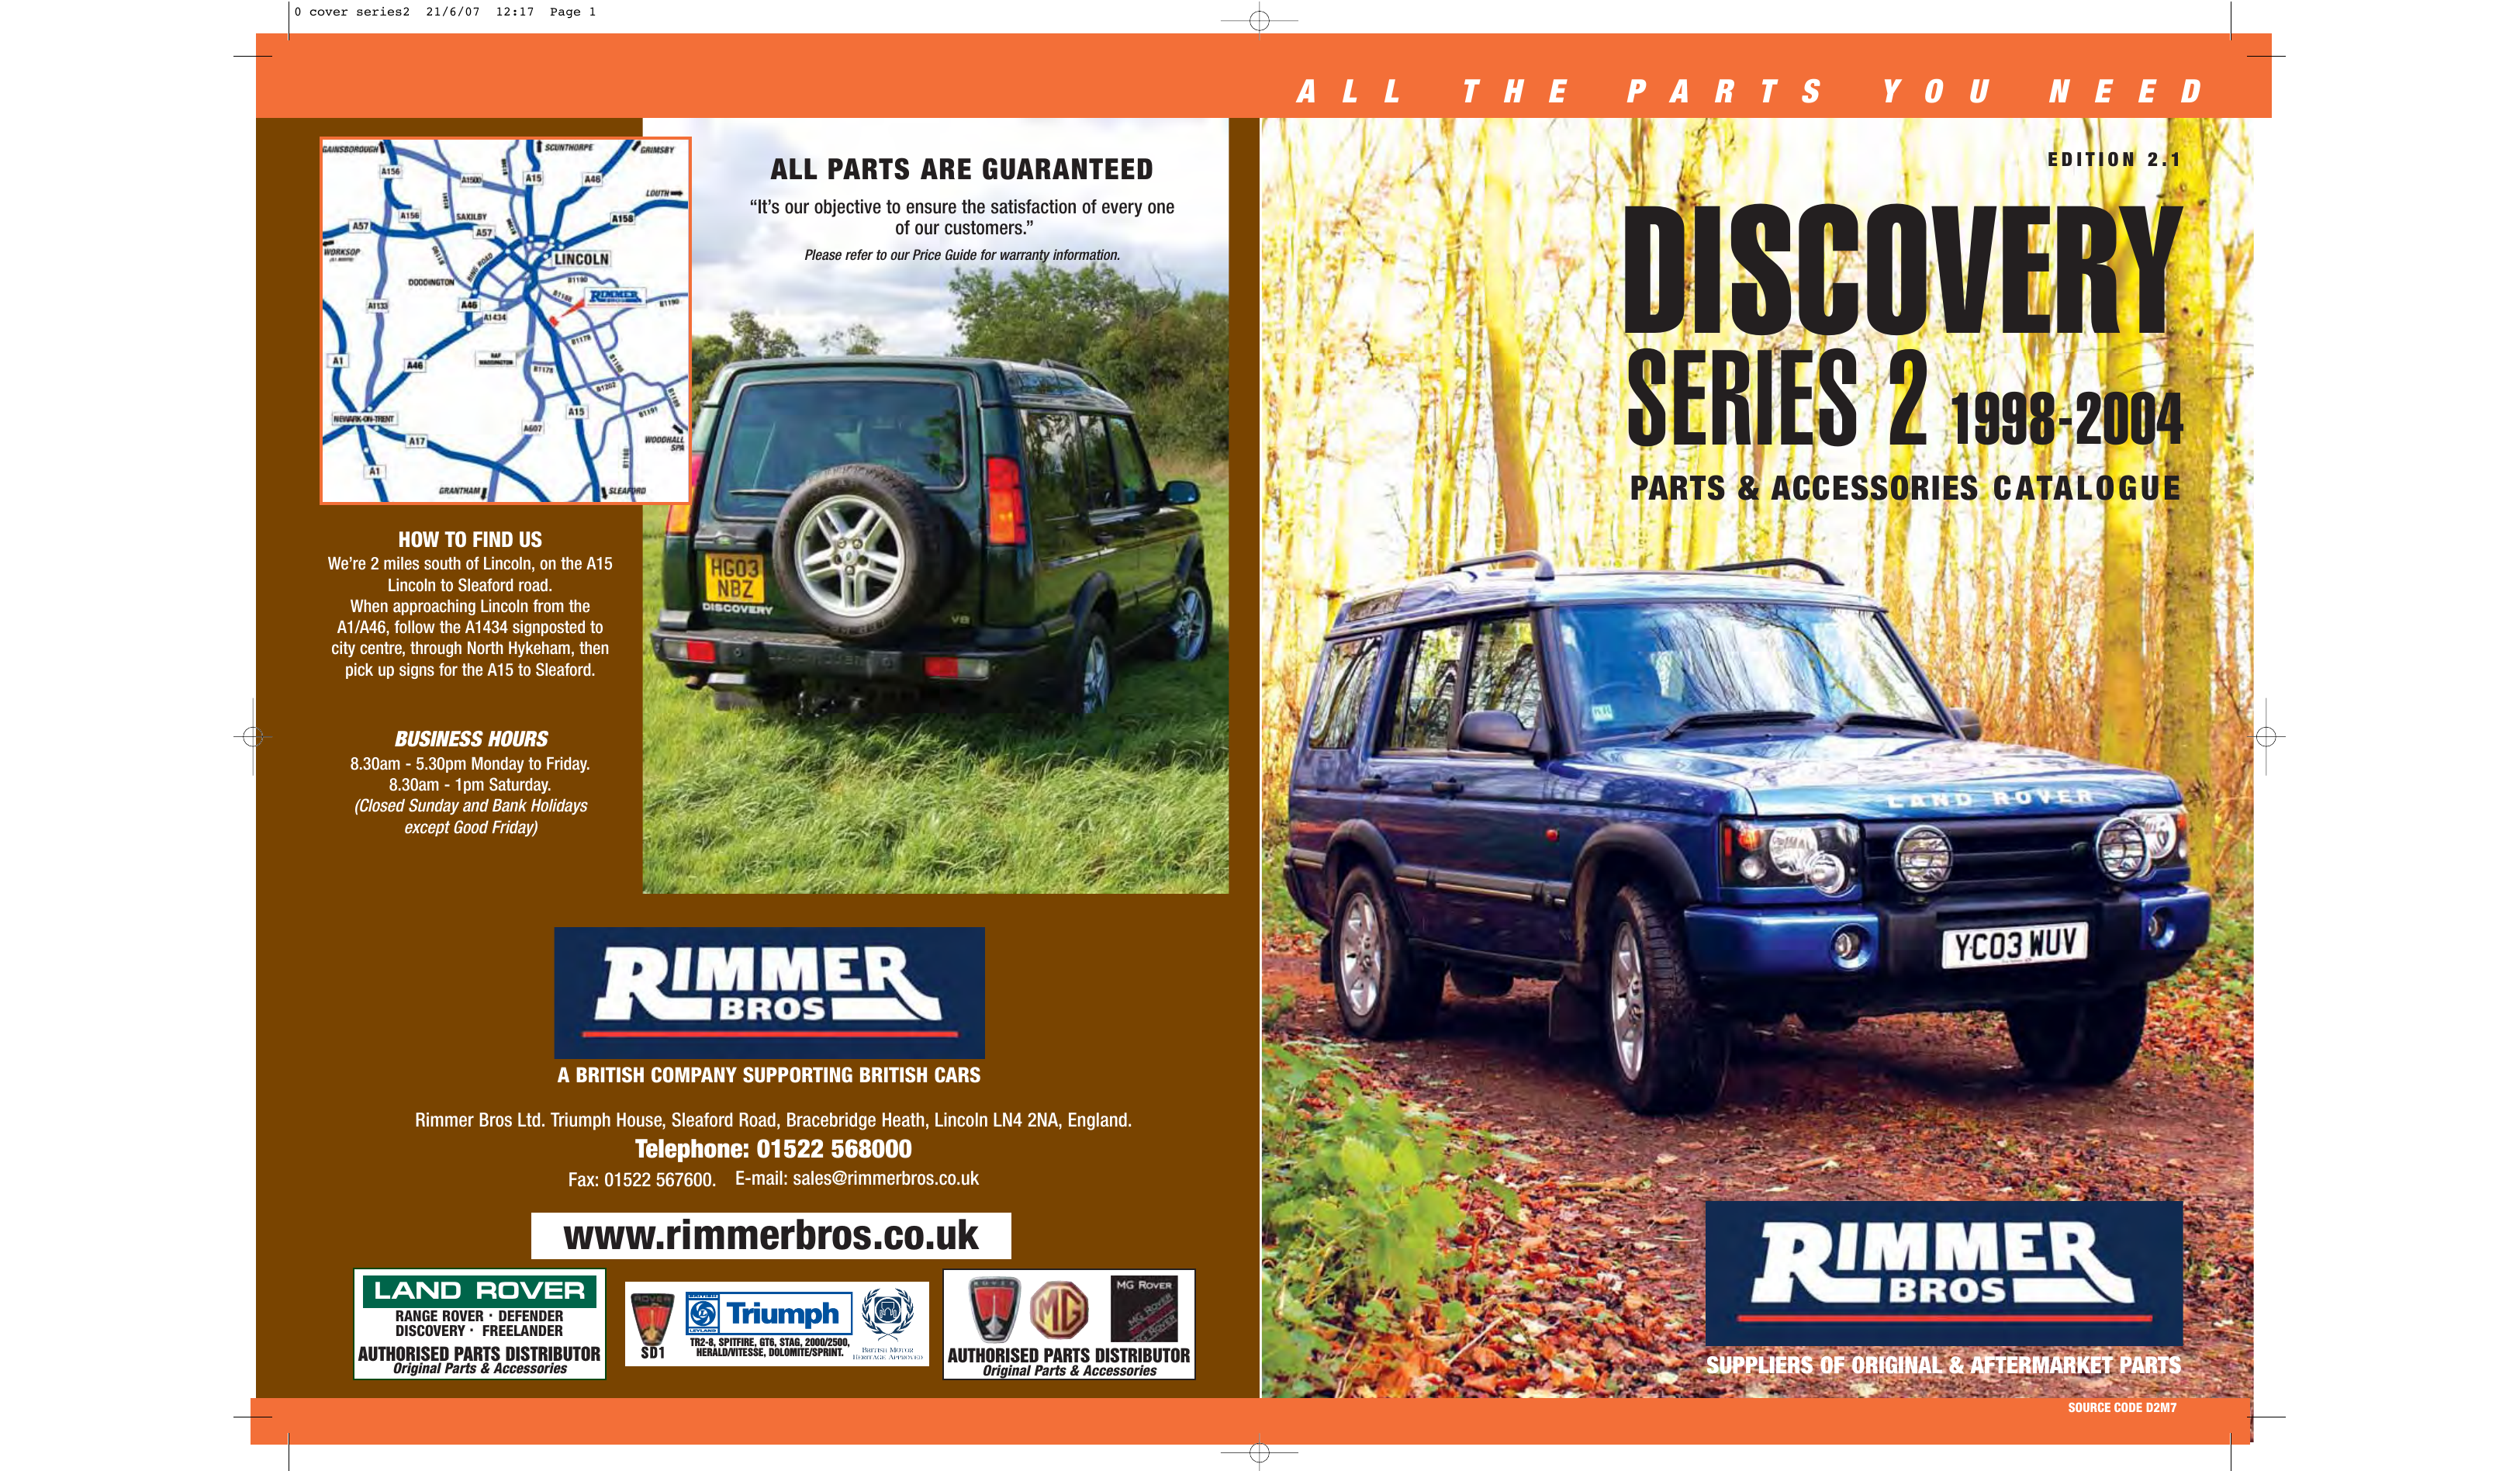 Land Rover Discovery Series 2 Rimmer Brothers 1998 Parts